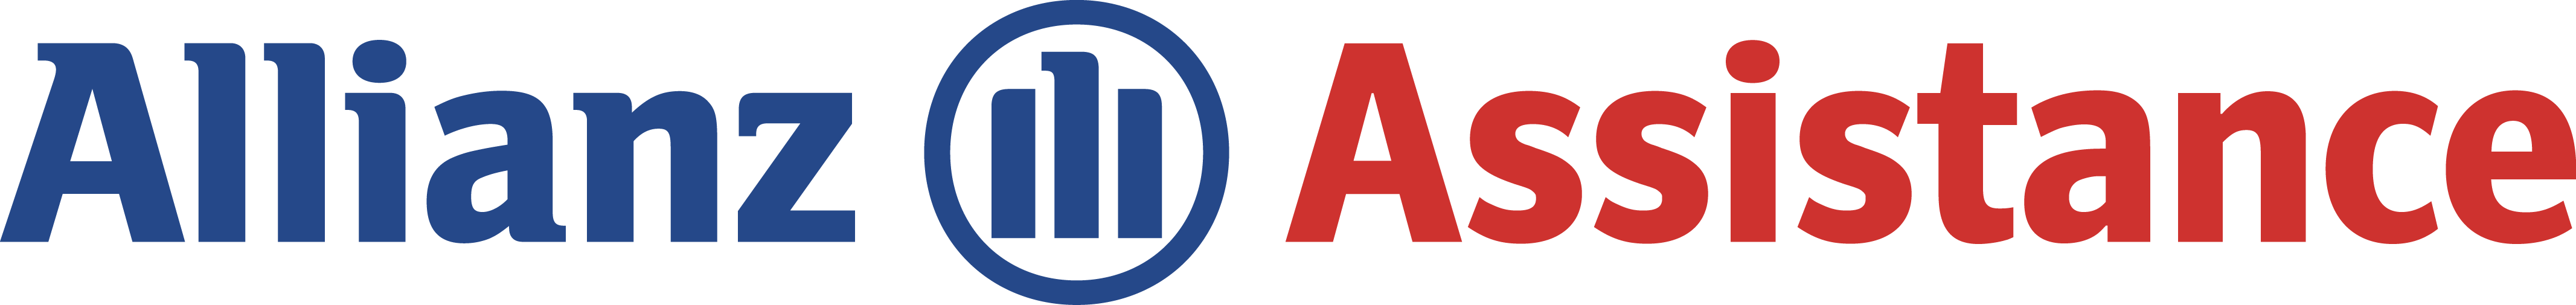 Allianz Logo - Updated June 2020.